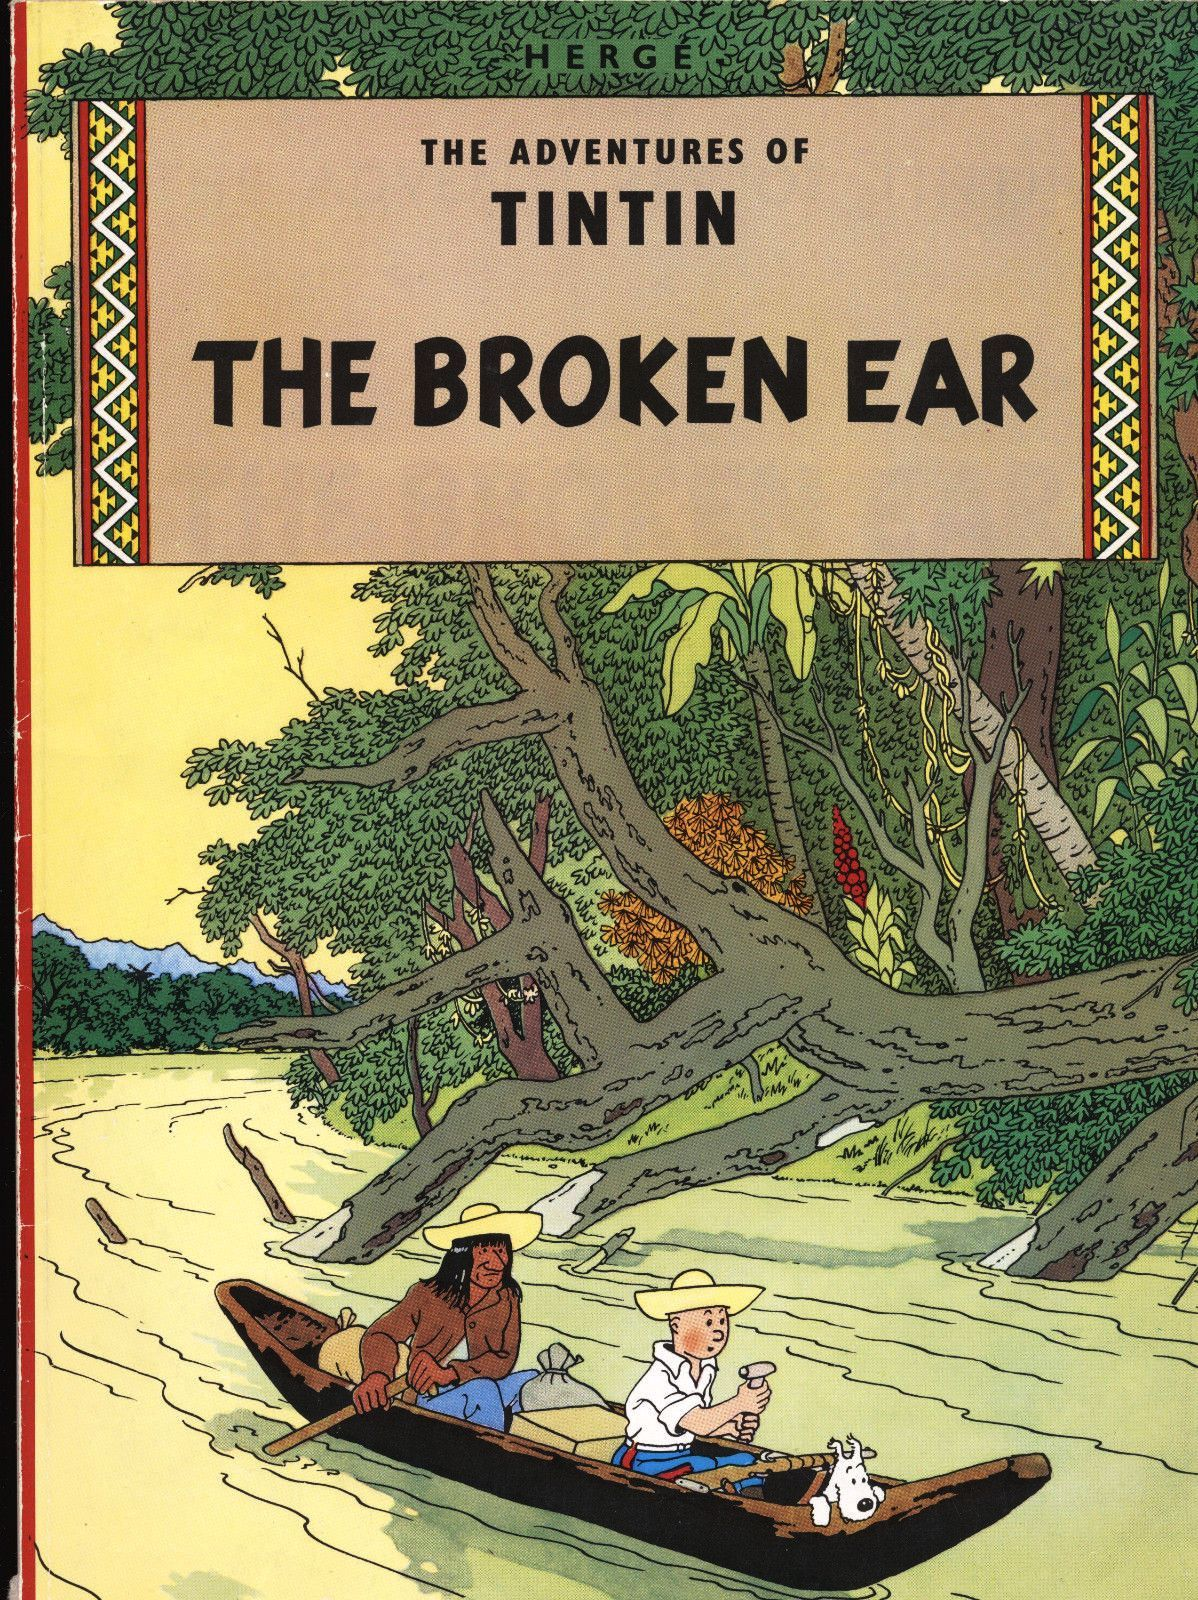 The Adventures Of Tintin The Broken Ear By Herge 1976 Tintin Book Posters Comics